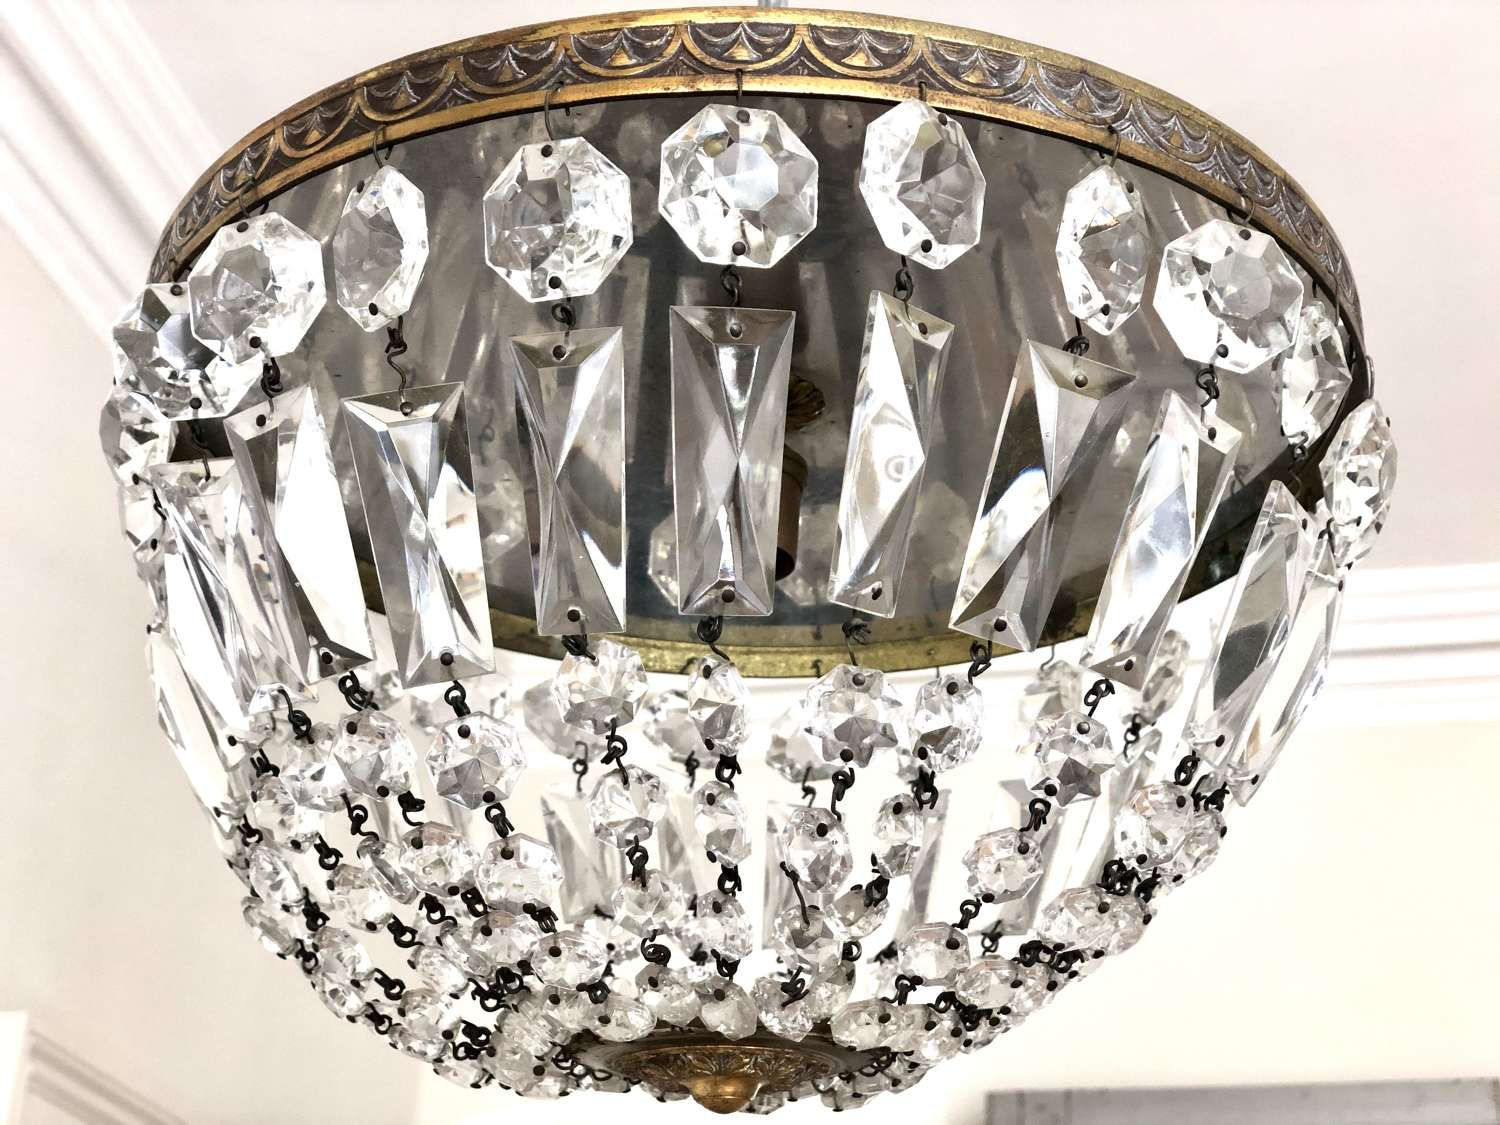 Antique French crystal bag chandelier